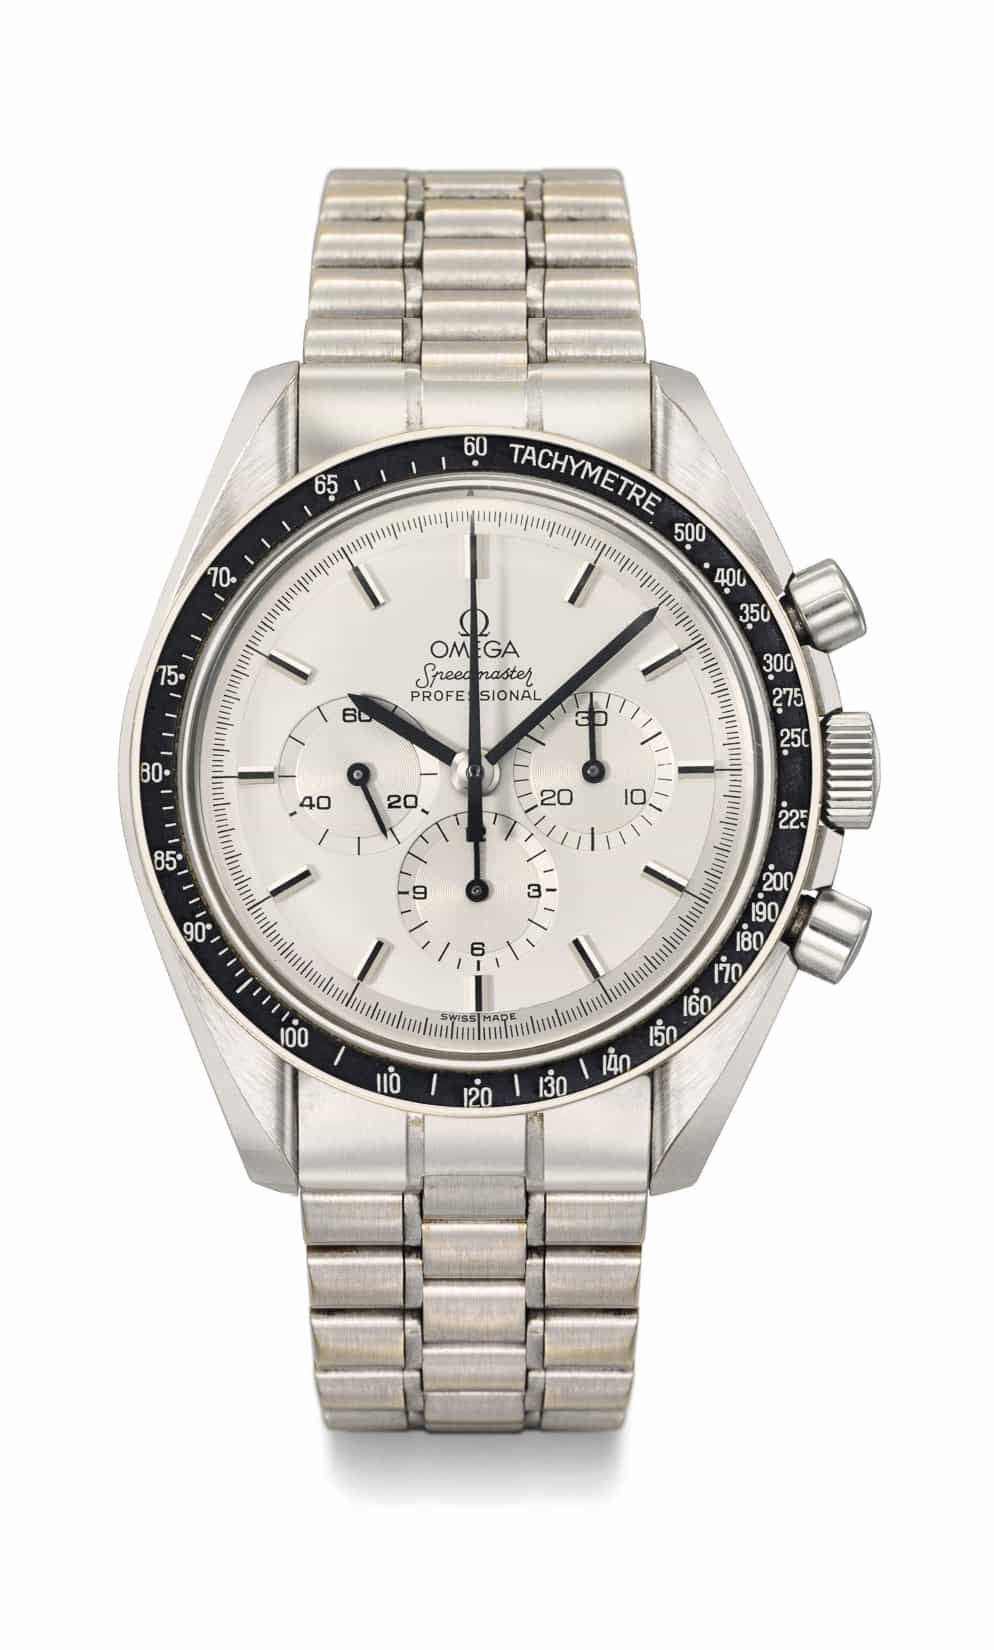 Omega Speedmaster Professional Reference BC345.0802